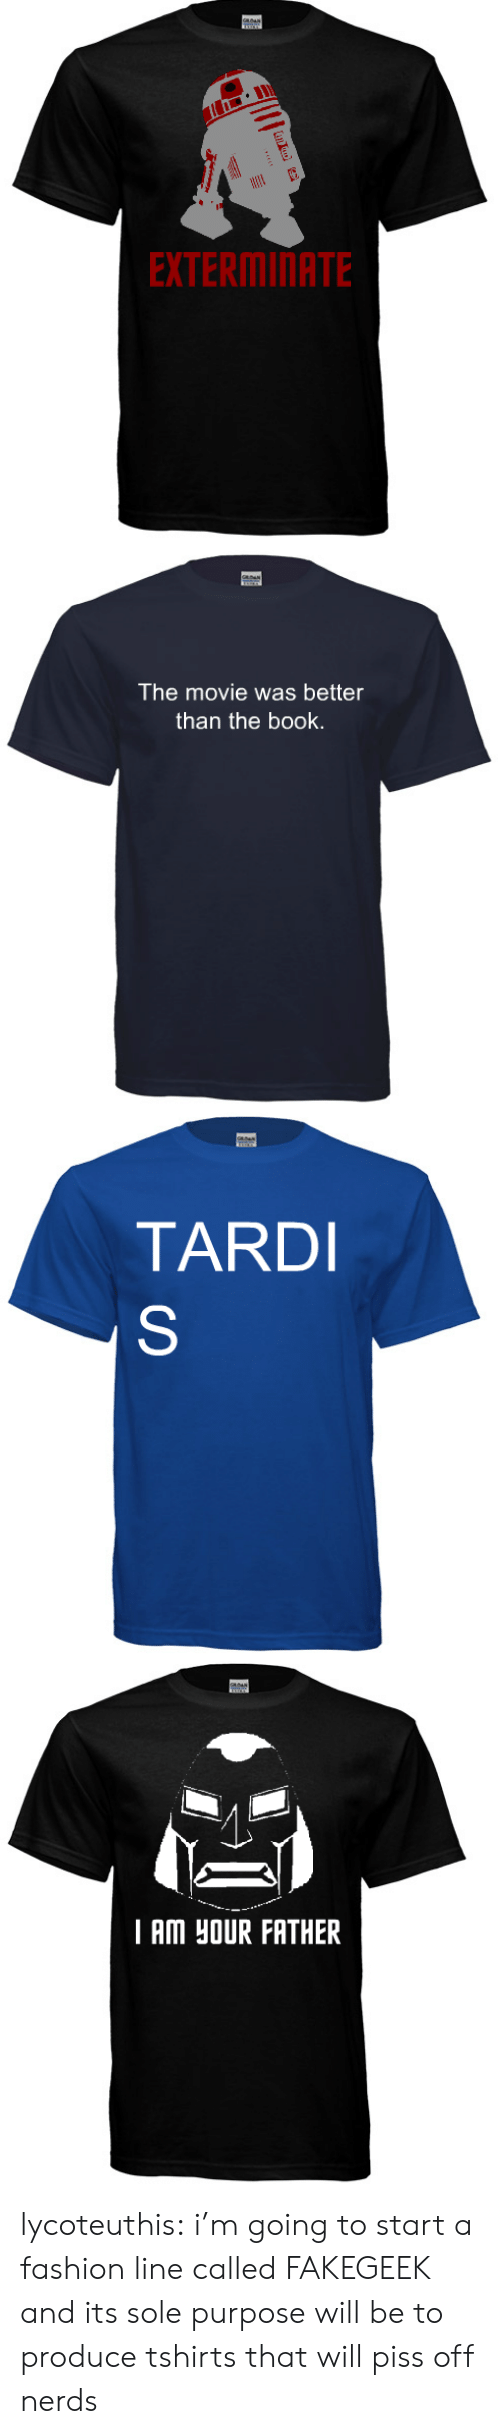 tard: EXTERMINATE   The movie was better  than the book.   TARD   I AM HOUR FATHER lycoteuthis: i'm going to start a fashion line called FAKEGEEK and its sole purpose will be to produce tshirts that will piss off nerds